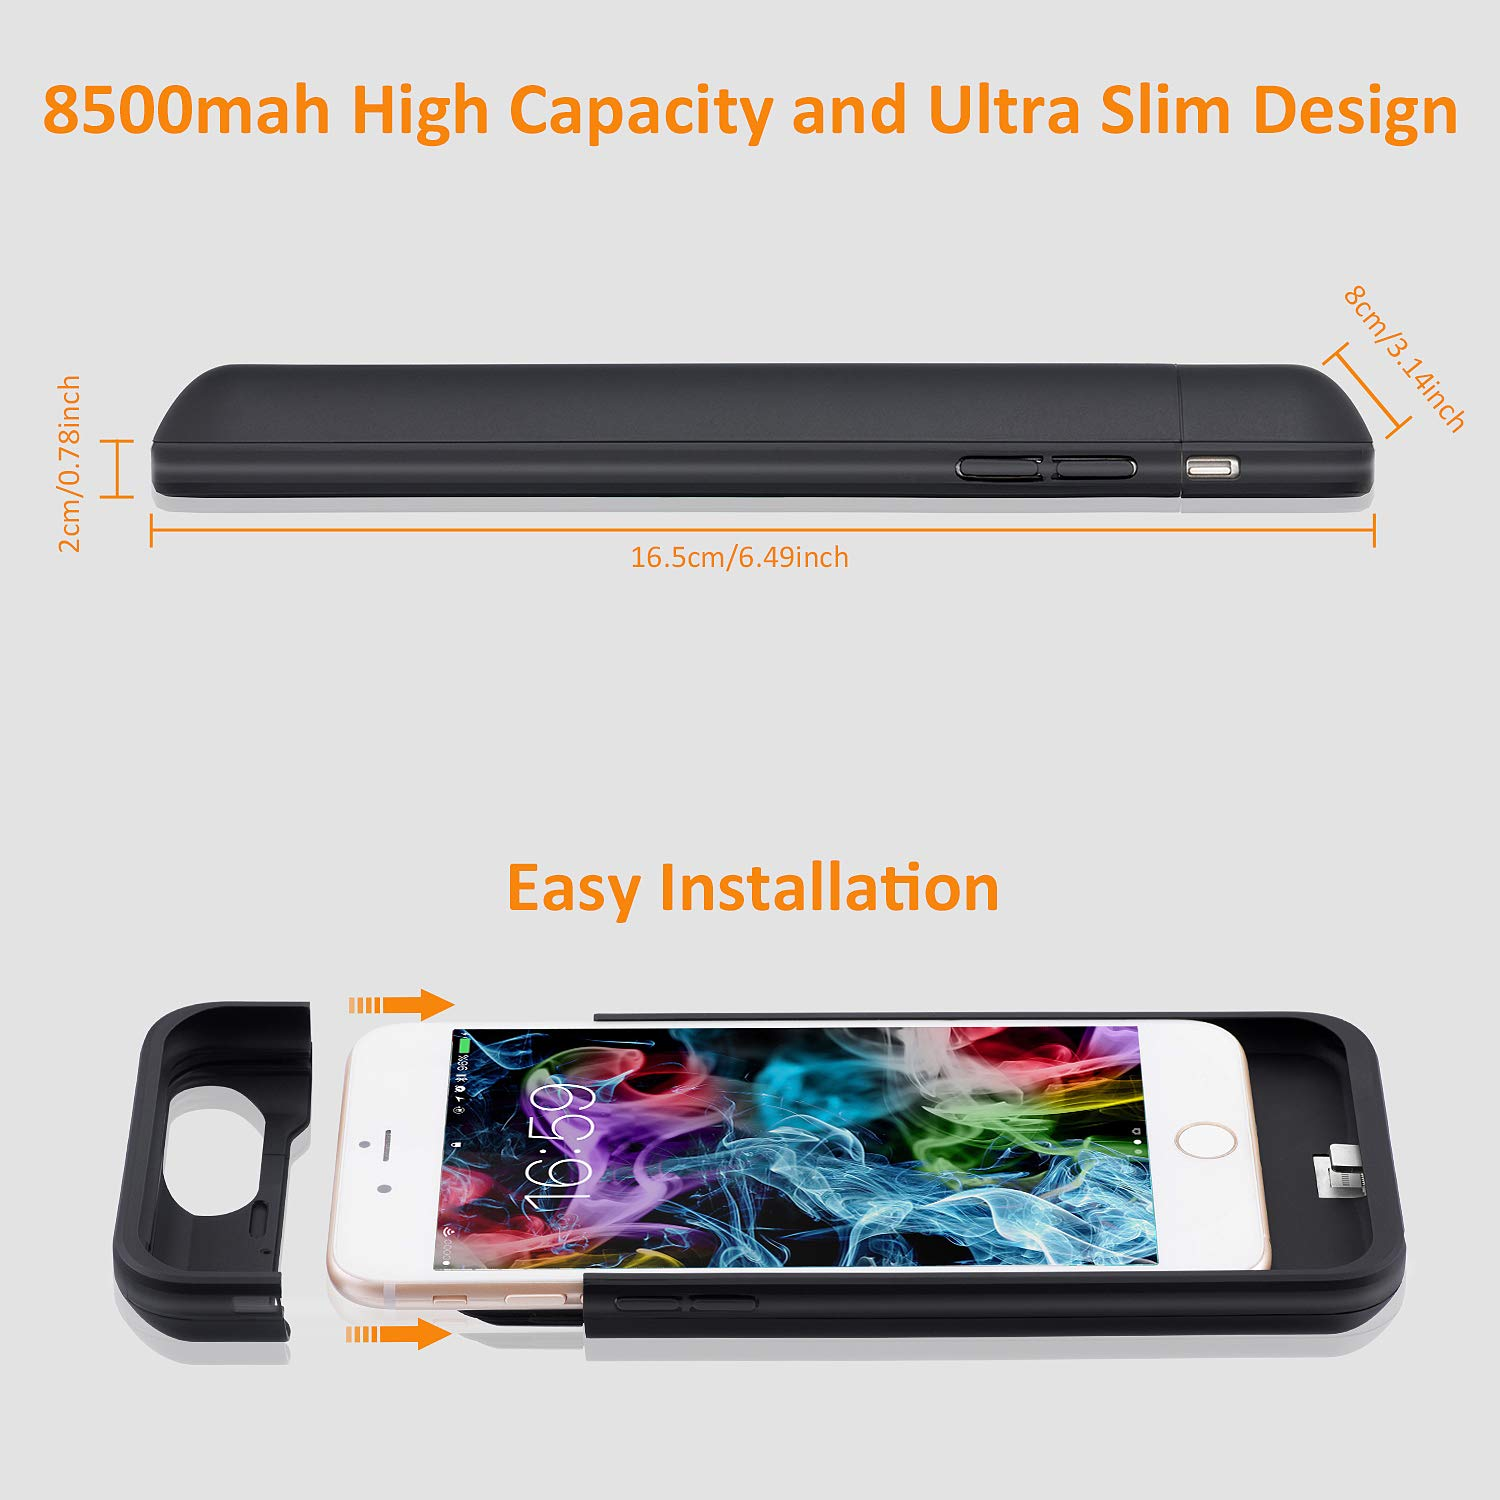 LCLEBM Battery Case for iPhone 6 Plus/ 6s Plus (5.5 inch), 8500mAh High Capacity Extended Battery Charger Case, Portable Protective Charging Case Compatible with iPhone 6 Plus/6s Plus - Black by LCLEBM (Image #5)